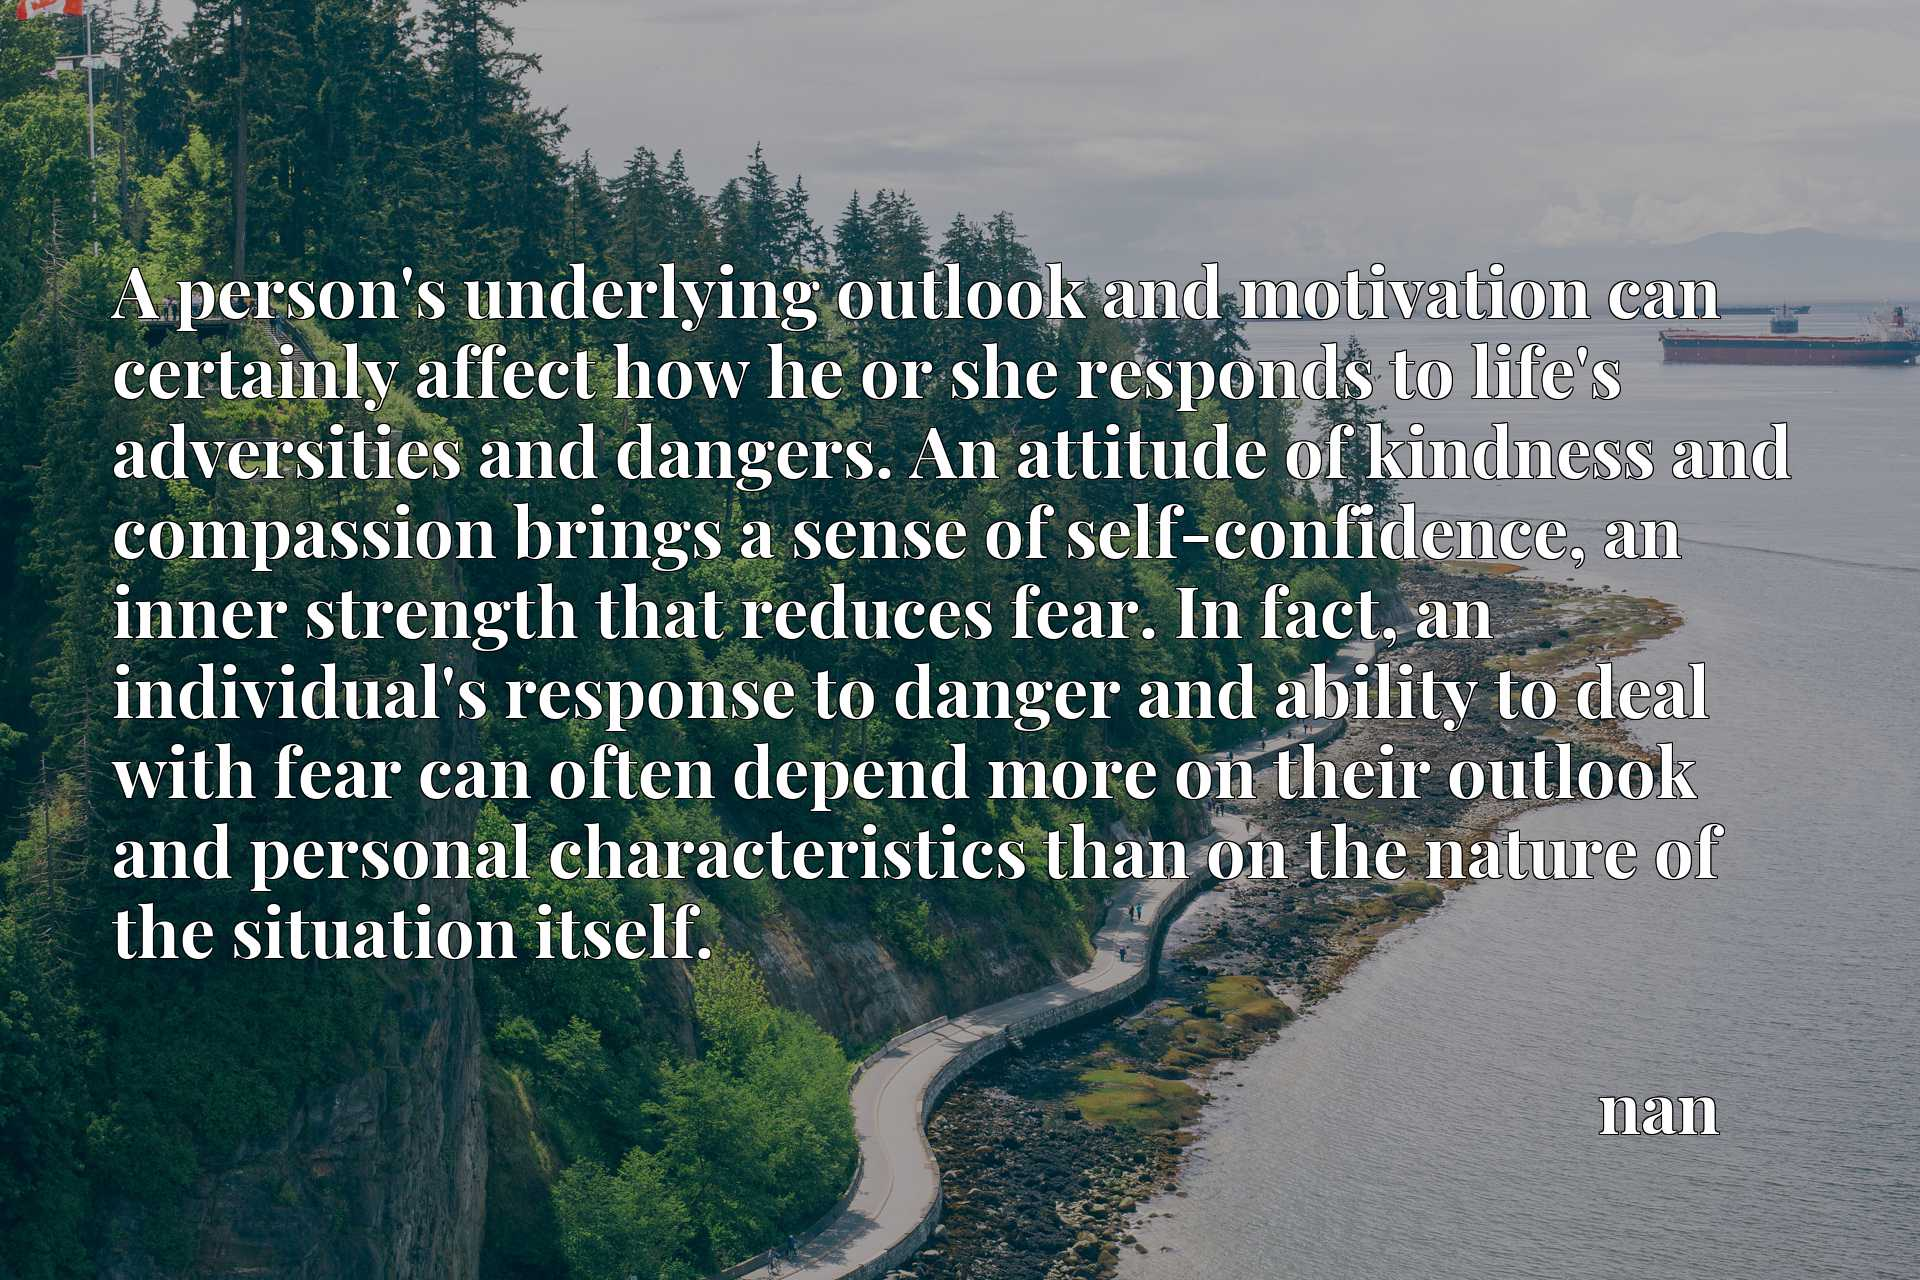 A person's underlying outlook and motivation can certainly affect how he or she responds to life's adversities and dangers. An attitude of kindness and compassion brings a sense of self-confidence, an inner strength that reduces fear. In fact, an individual's response to danger and ability to deal with fear can often depend more on their outlook and personal characteristics than on the nature of the situation itself.